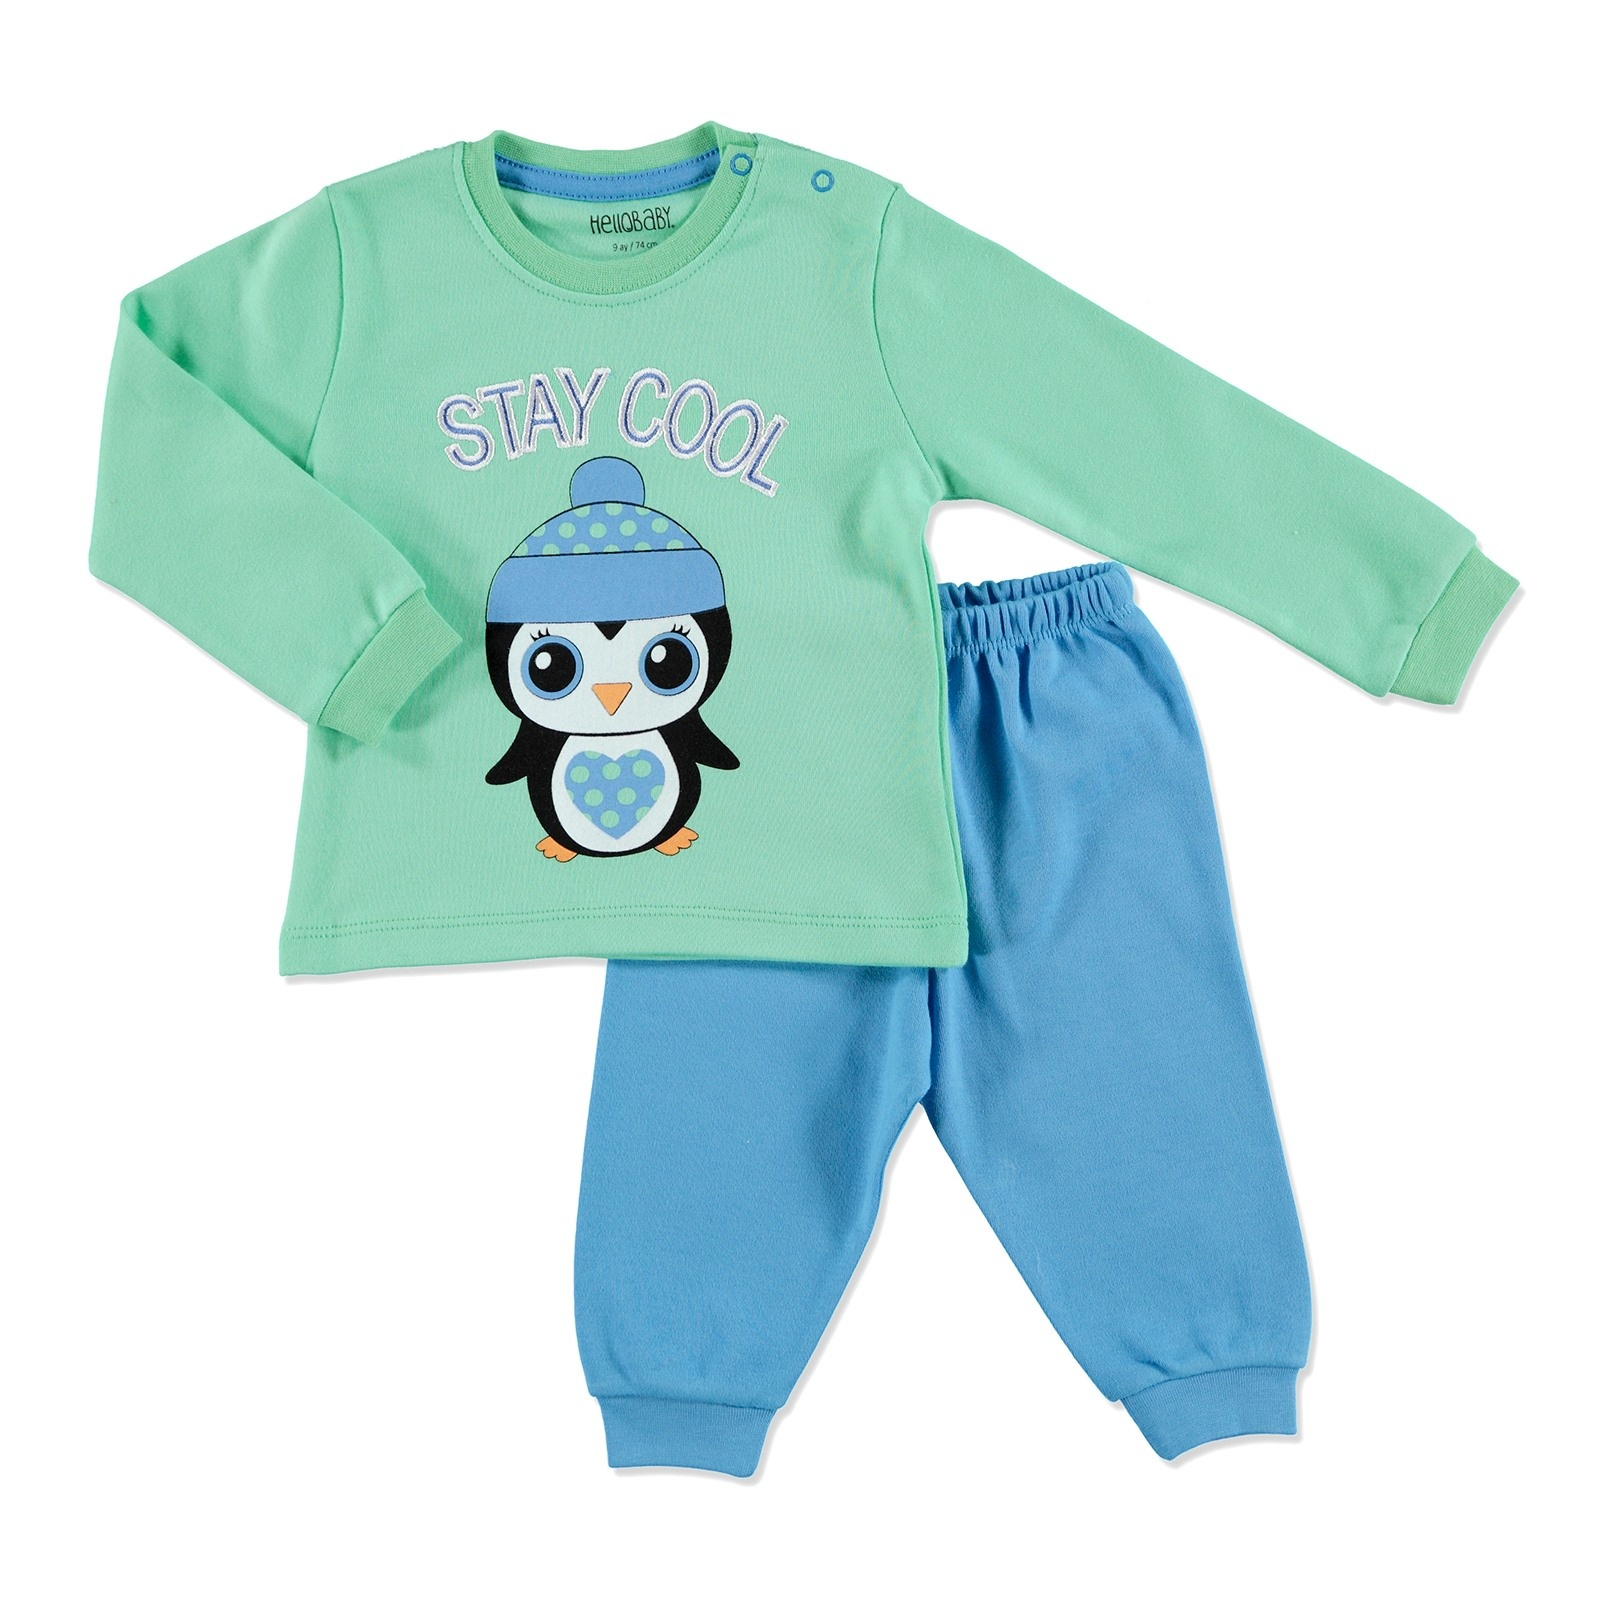 Ebebek HelloBaby Winter Baby Basic Embroidered Pyjama Set